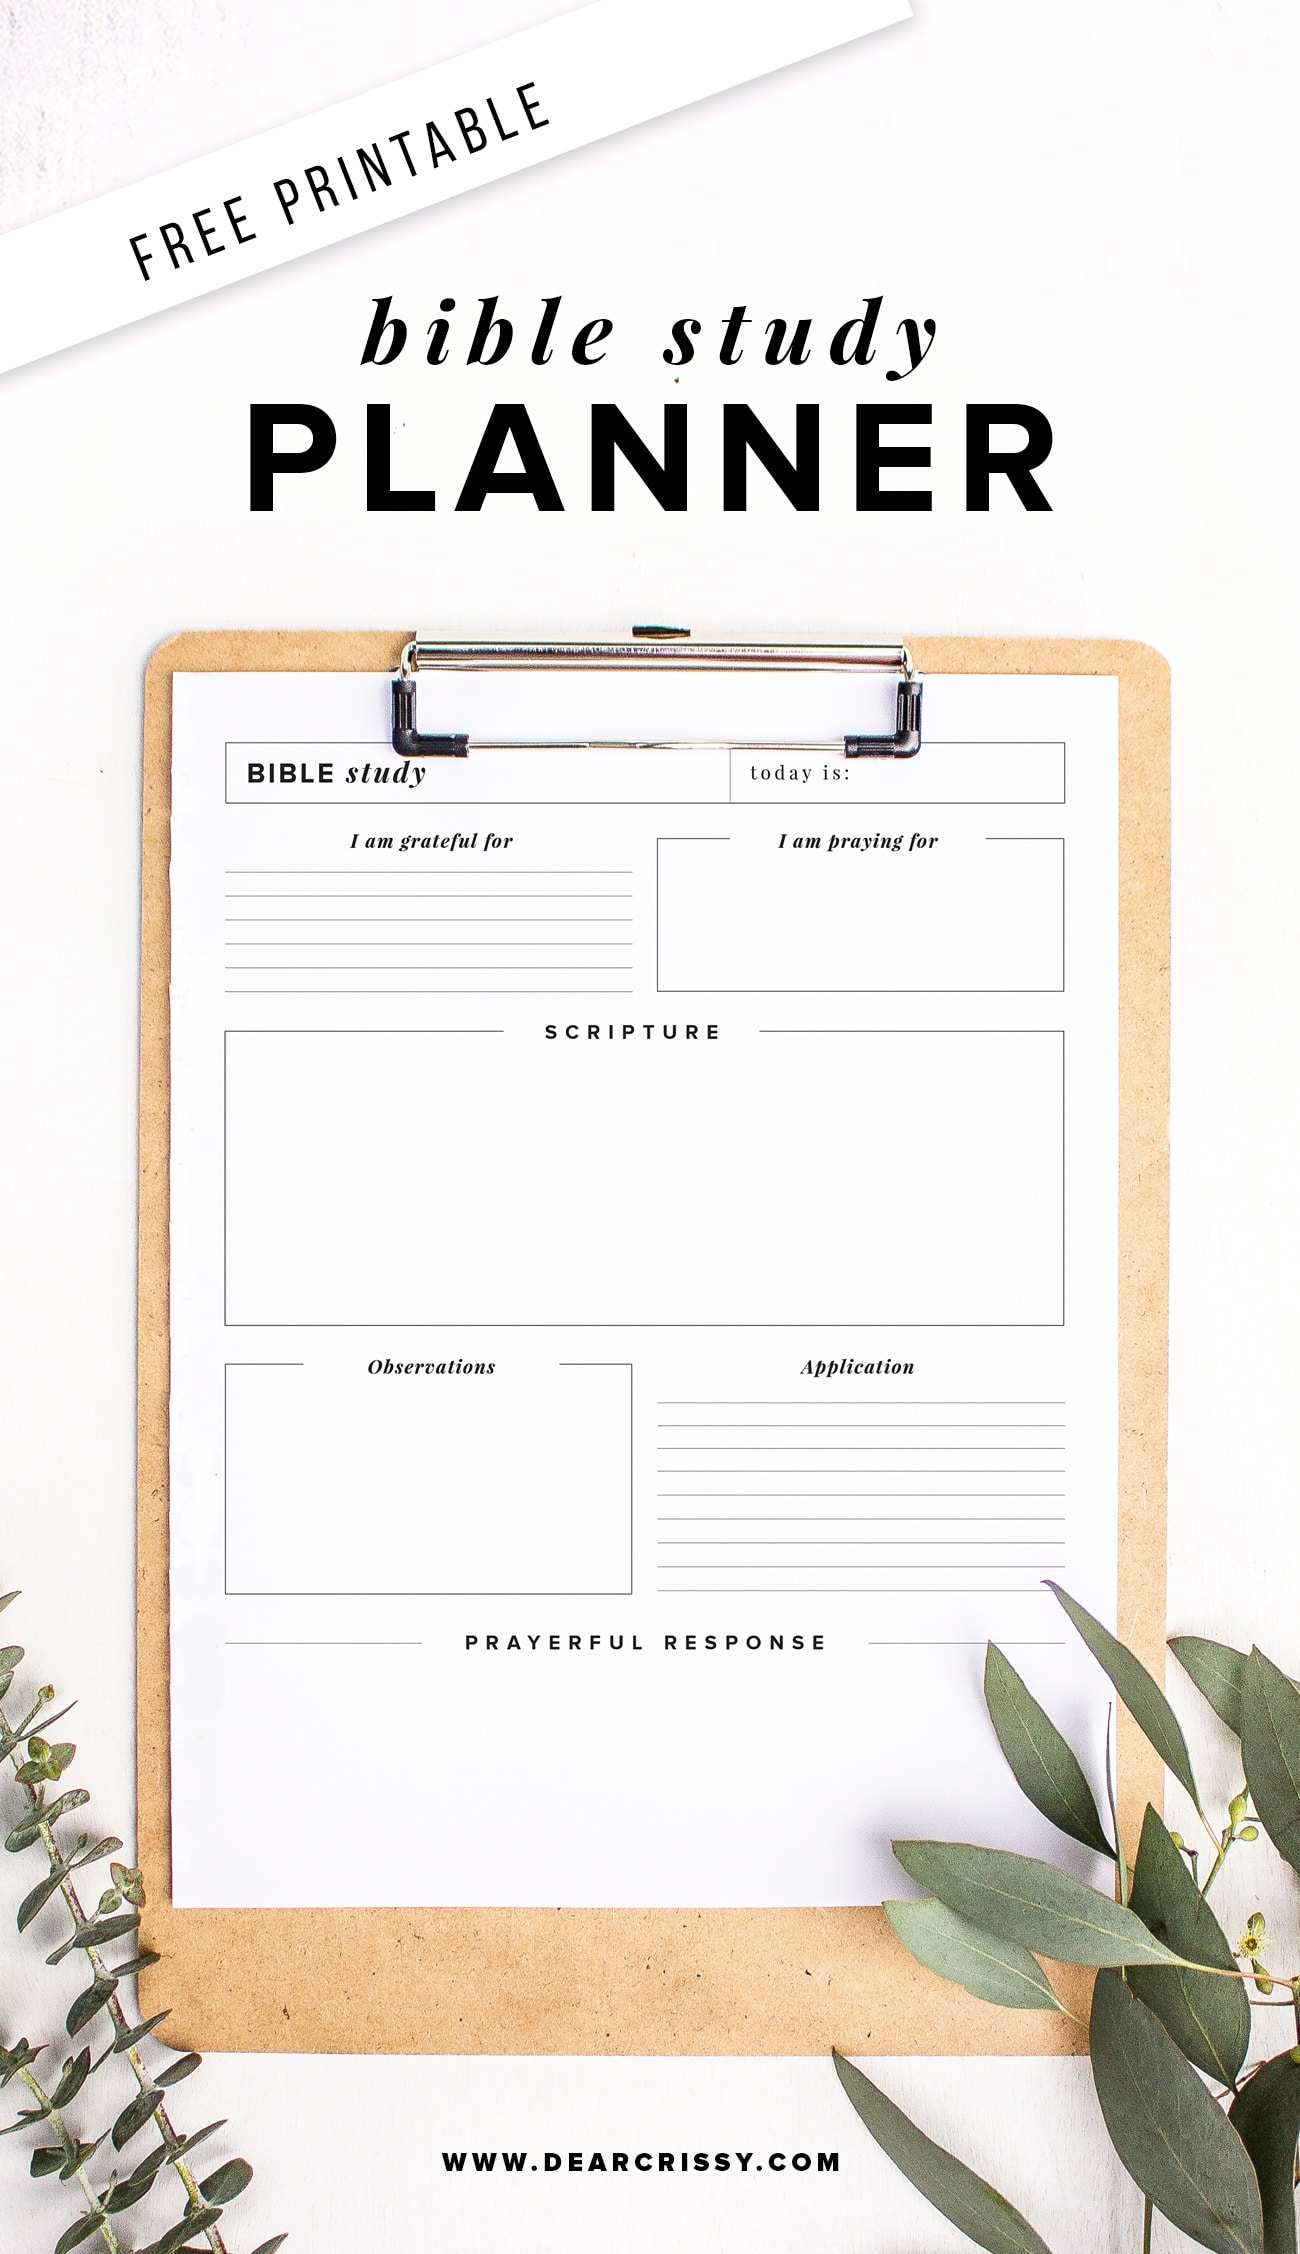 Free Printable Bible Study Planner - Soap Method Bible Study Worksheet! - Free Printable Bible Study Worksheets